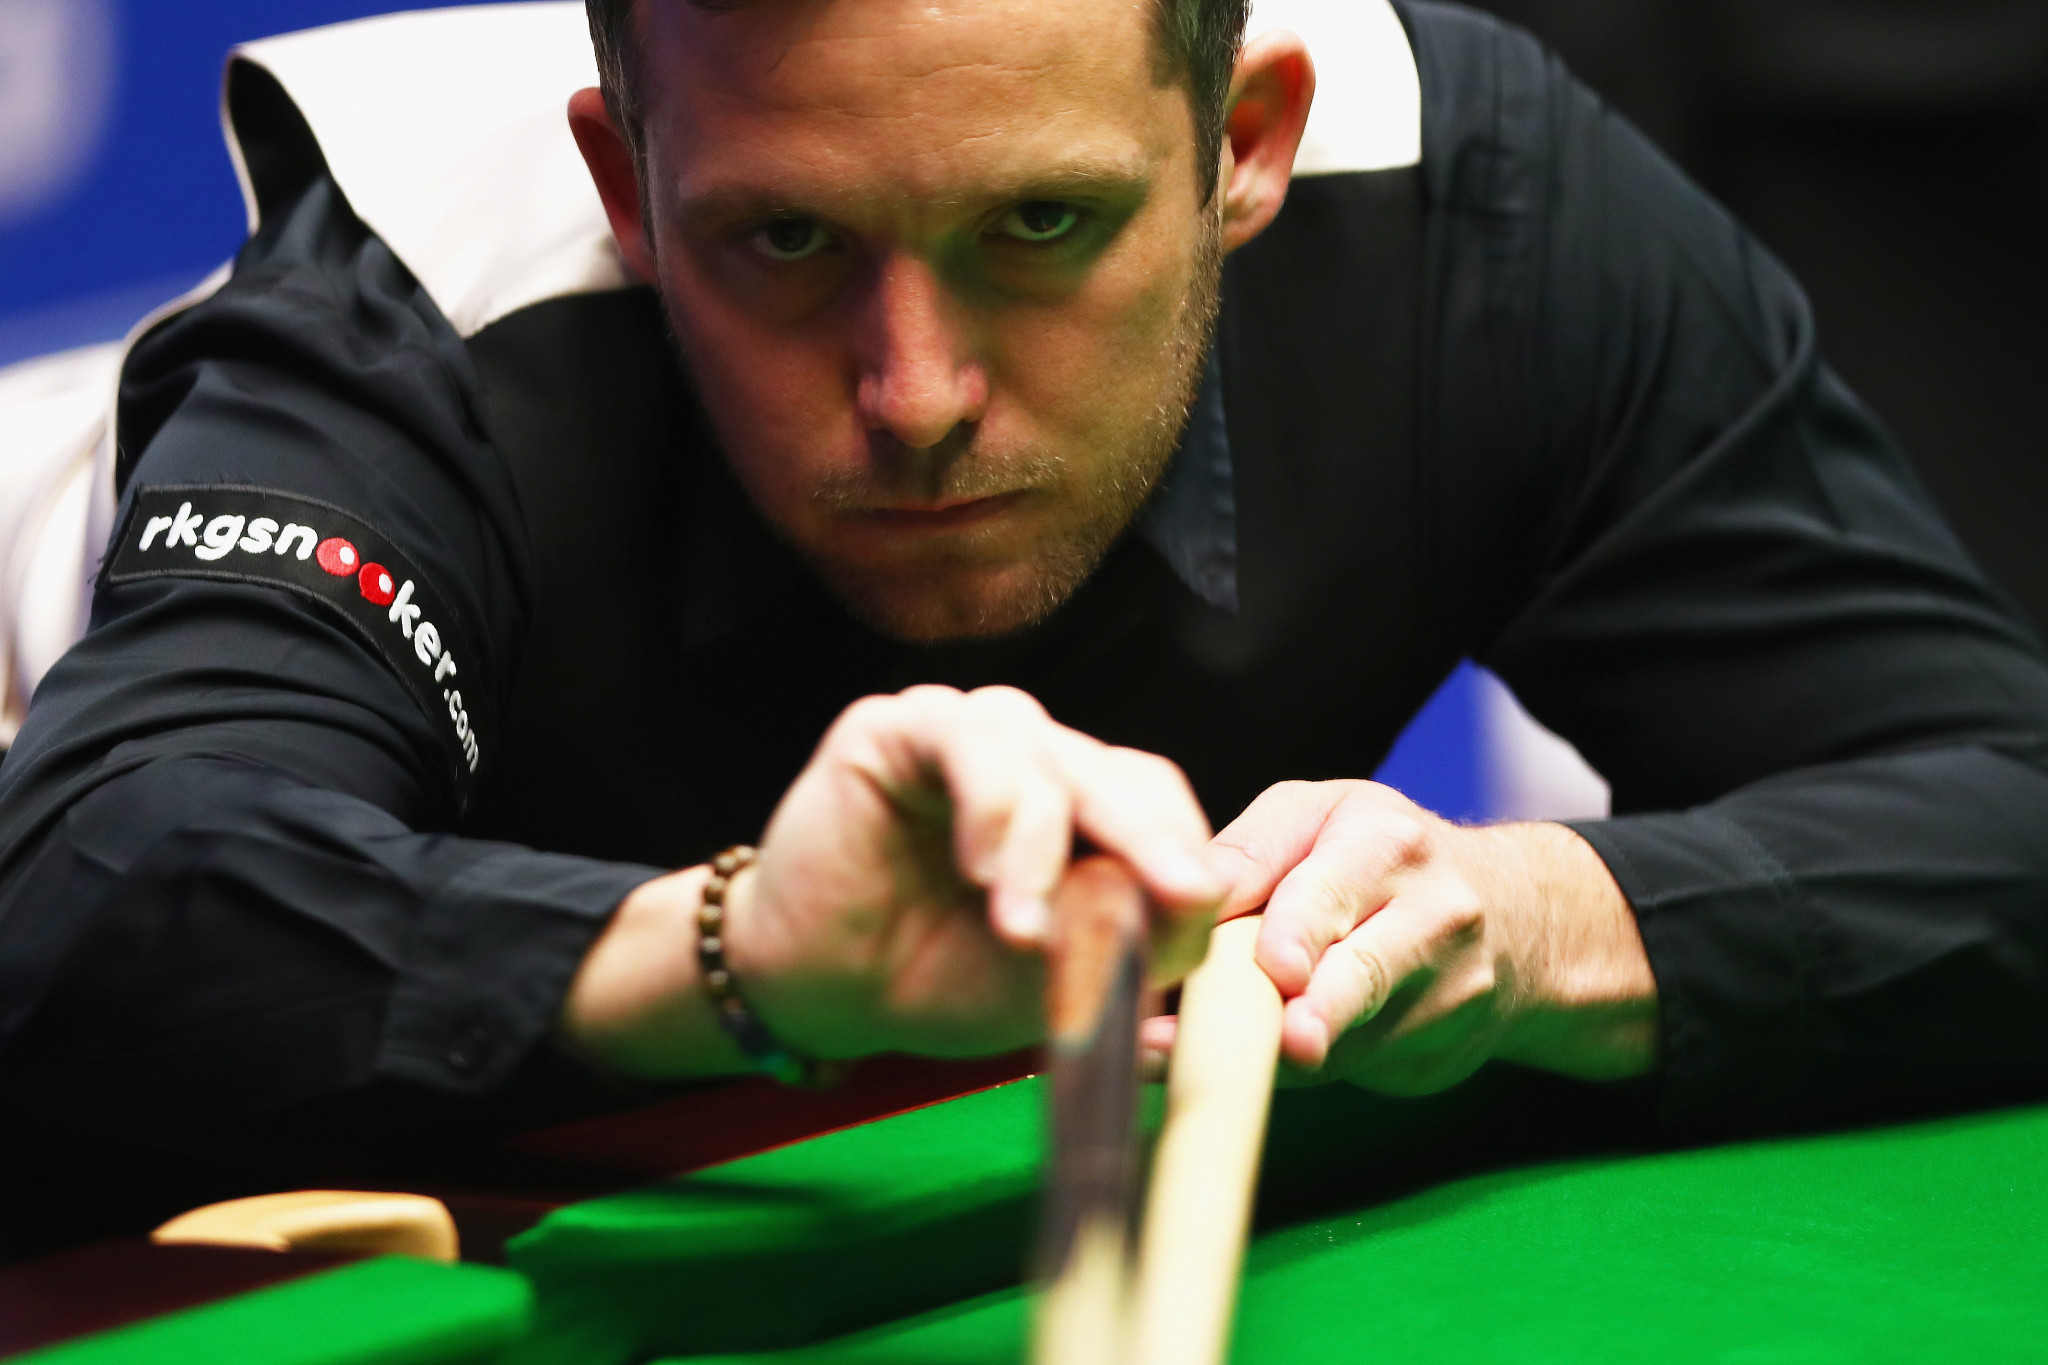 Snooker player Jones fails in attempt to overturn one-year ban